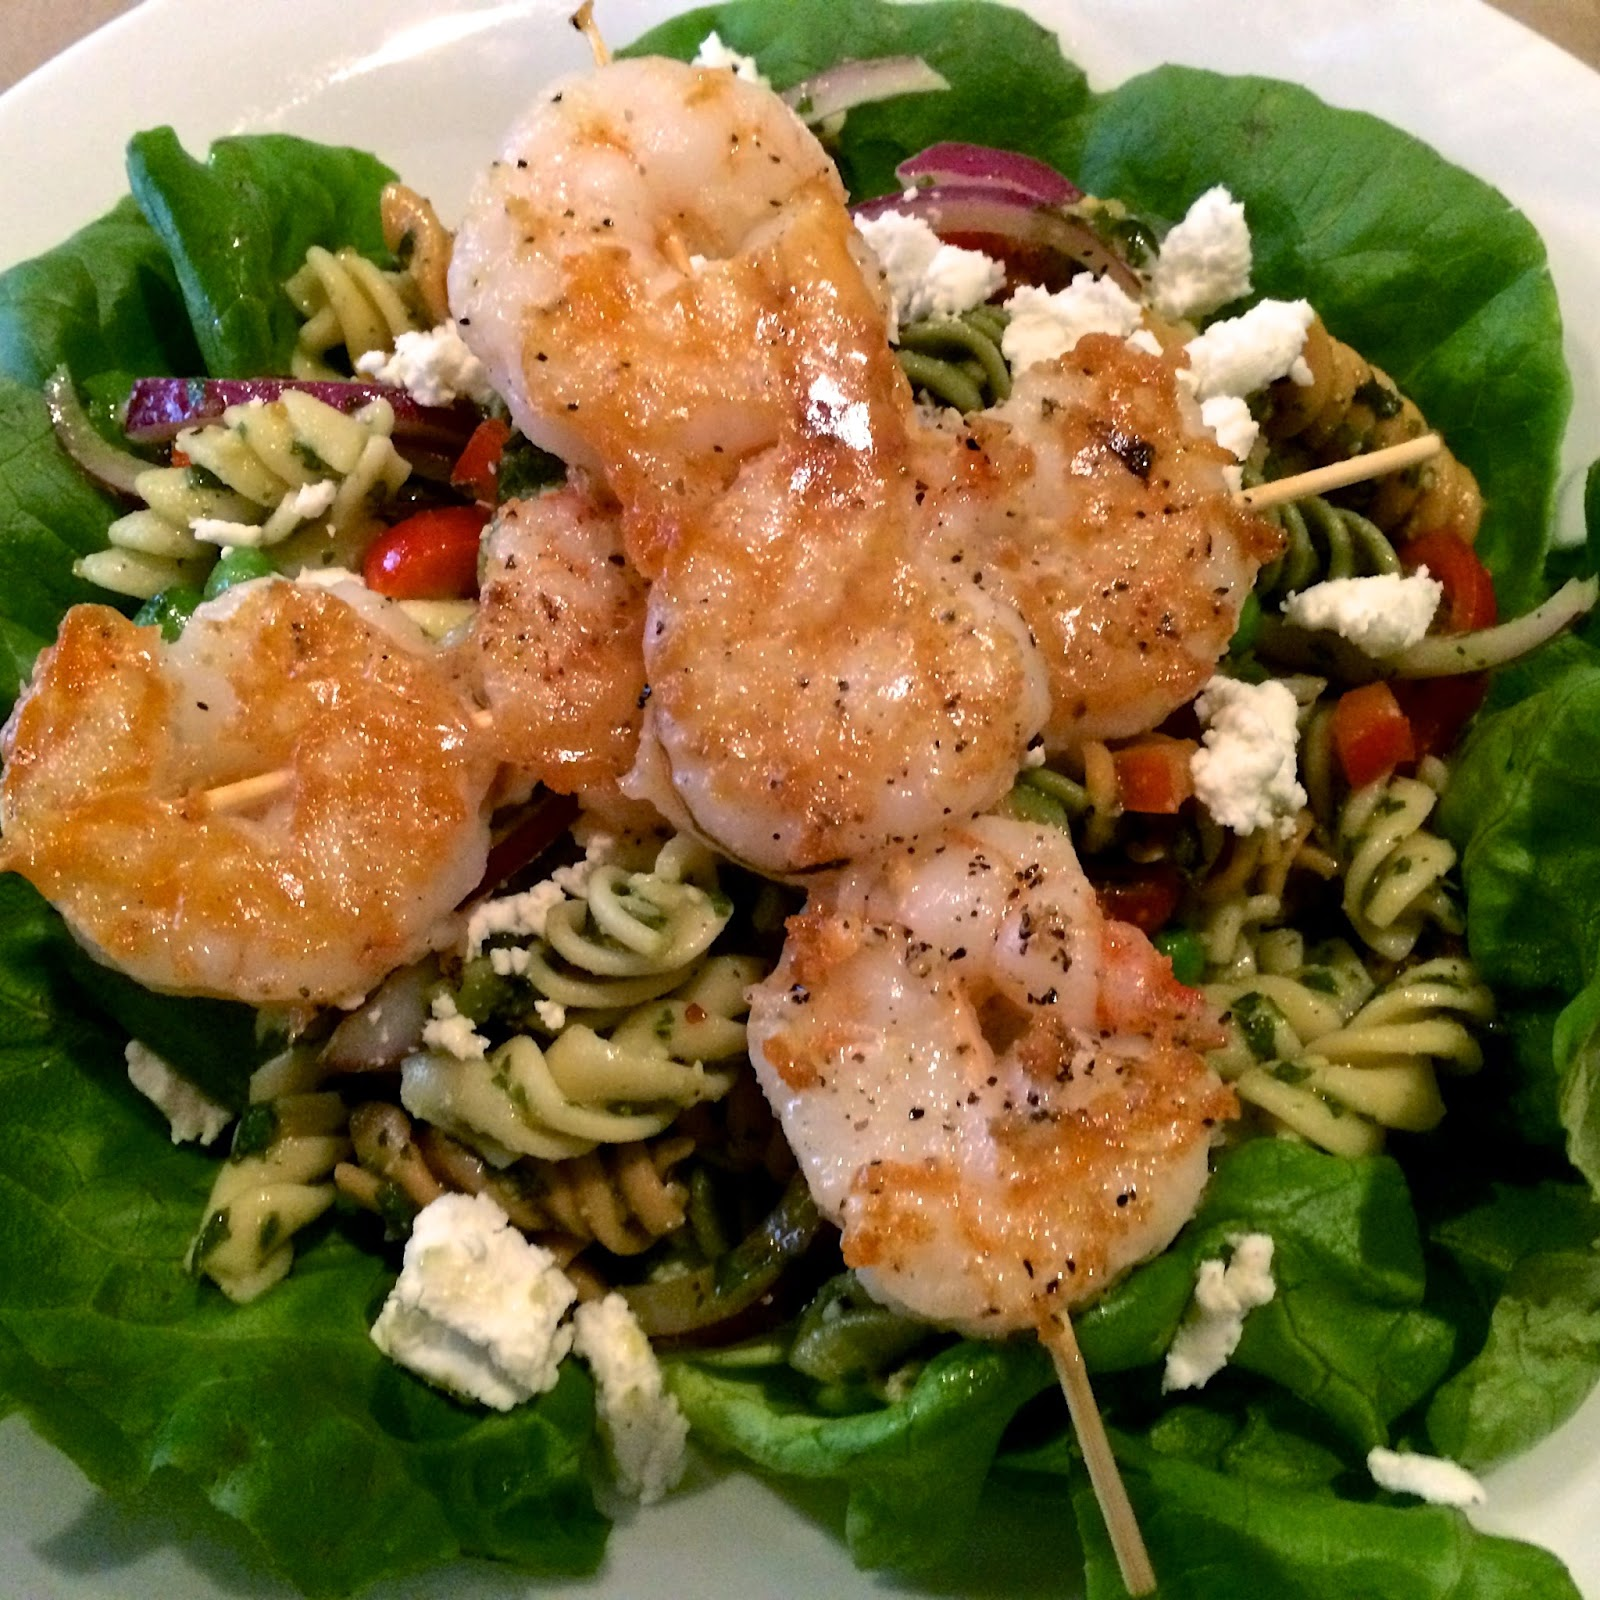 Beausoleil's Grilled Shrimp Pasta Salad